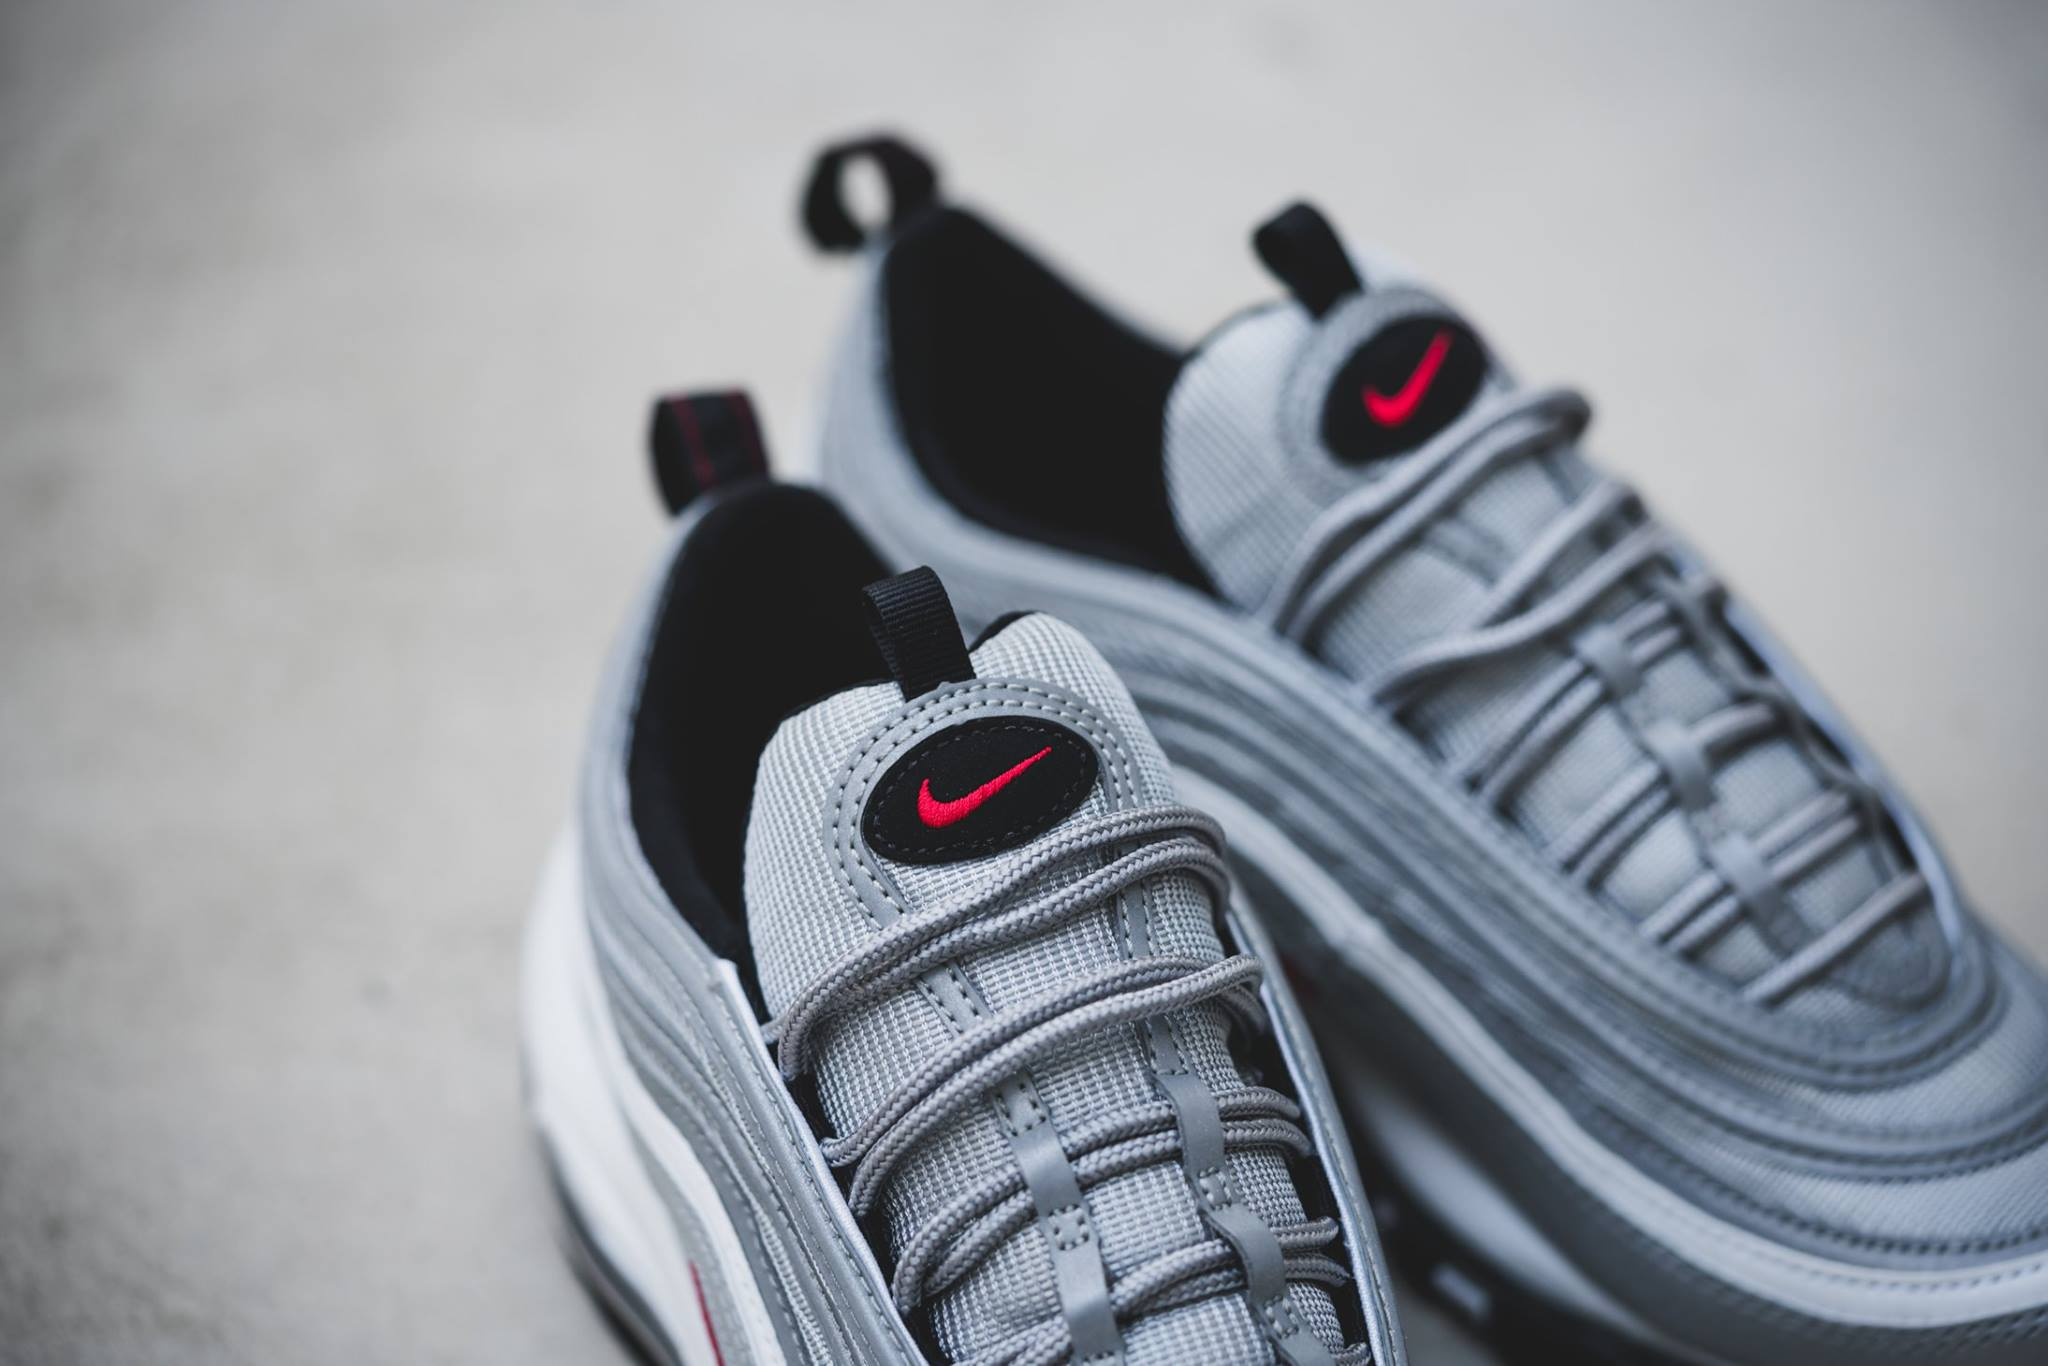 Nike Air Max 97 Undefeated Price The River City News